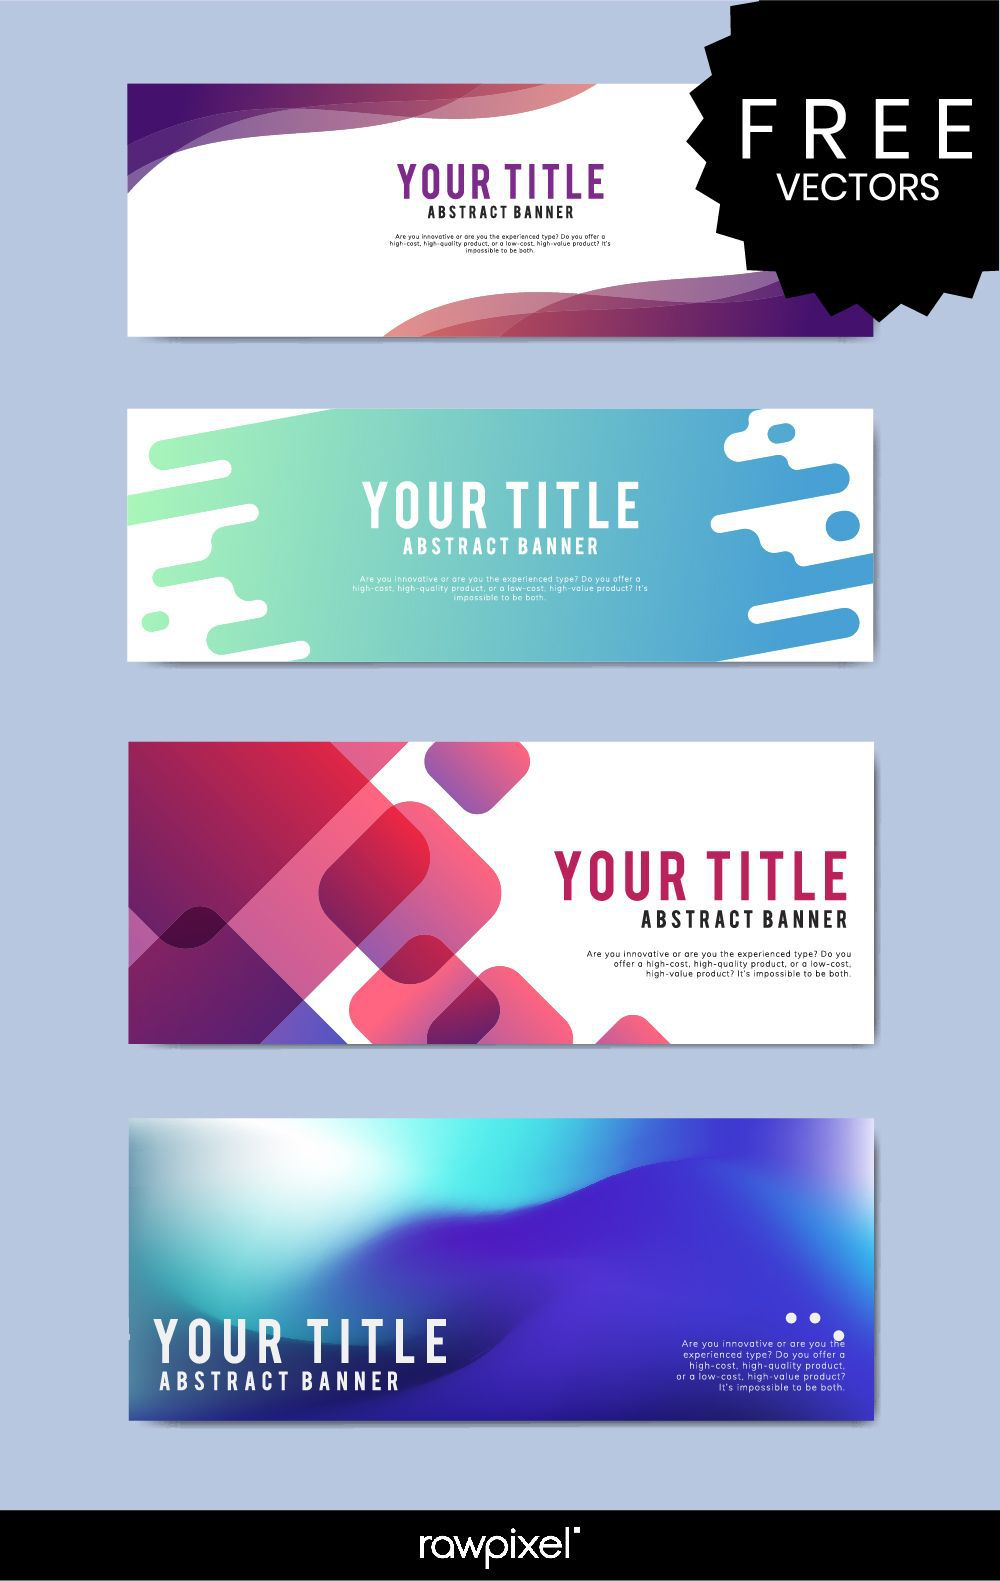 005 Staggering Free Graphic Design Template Idea  Templates For Flyer Powerpoint Download T-shirtFull